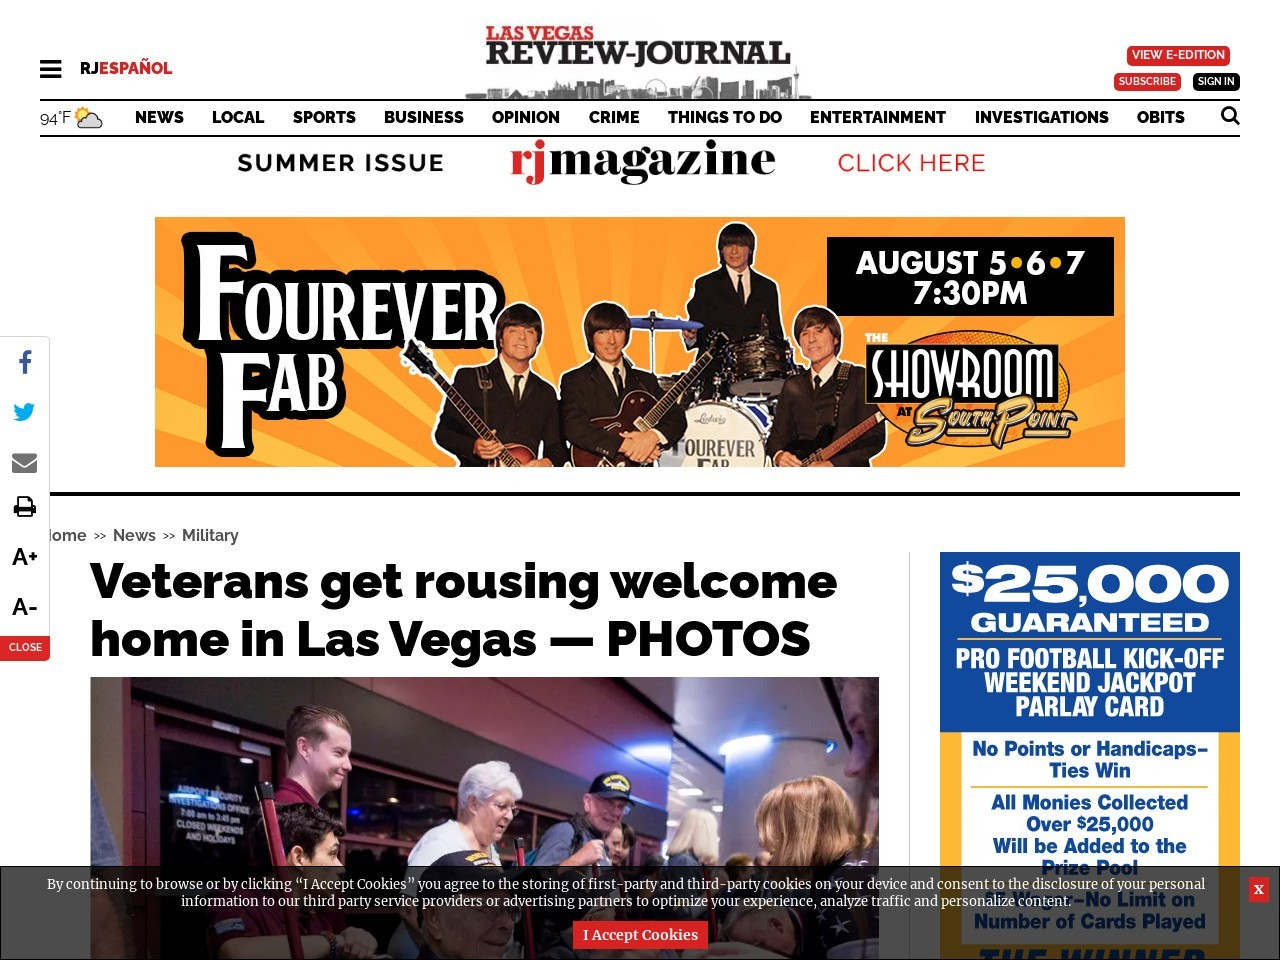 Veterans get rousing welcome home in Las Vegas — PHOTOS